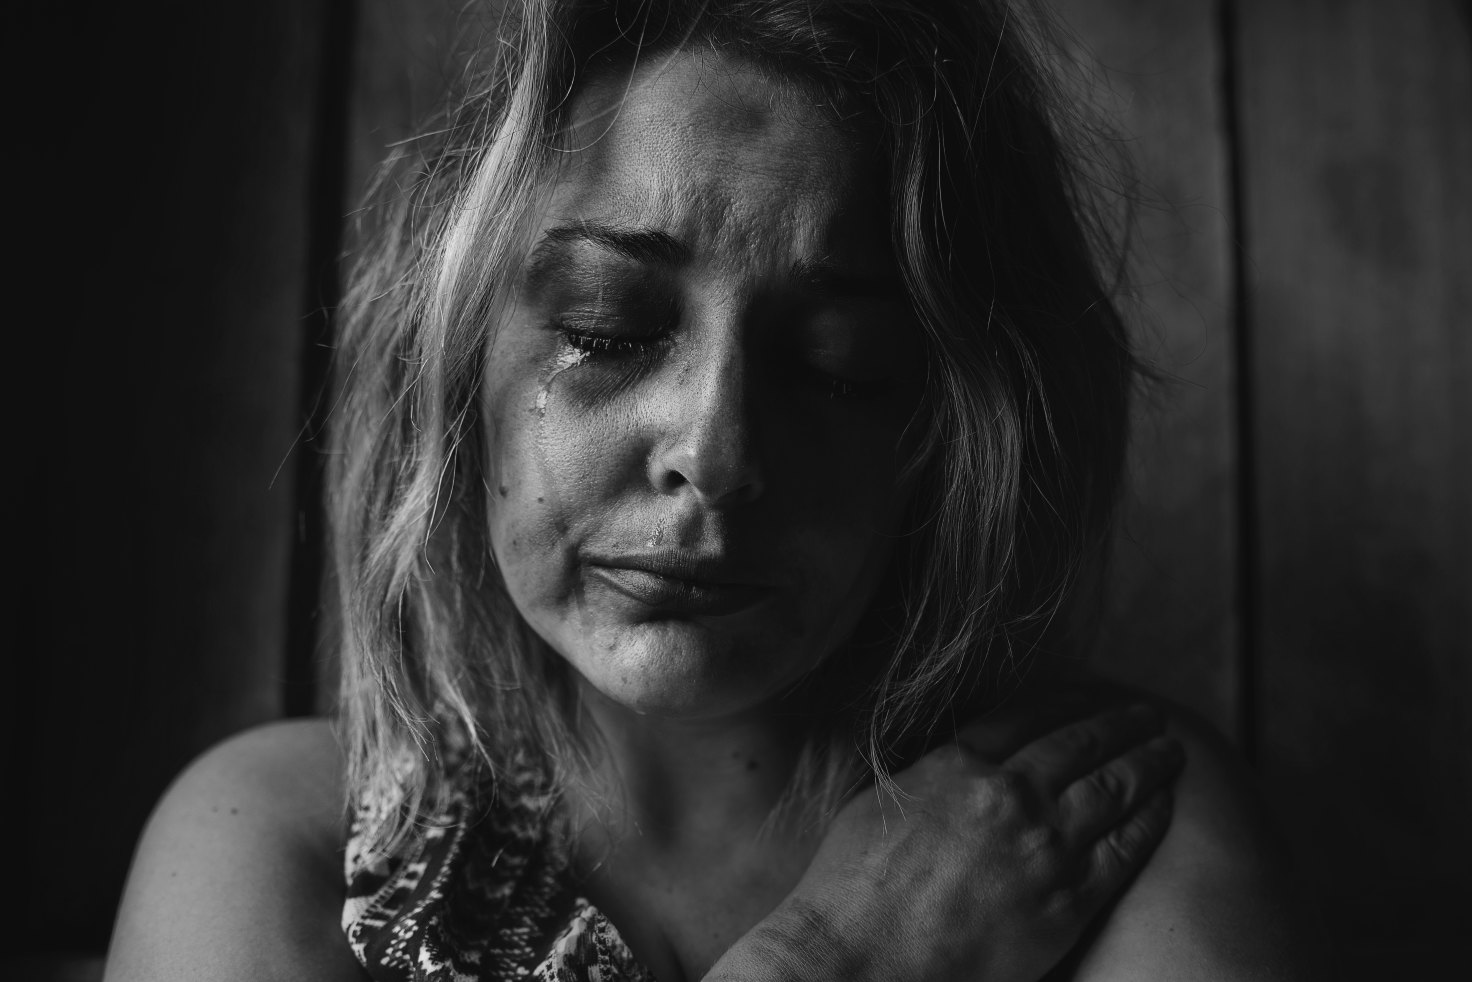 Weinende Frau / crying woman